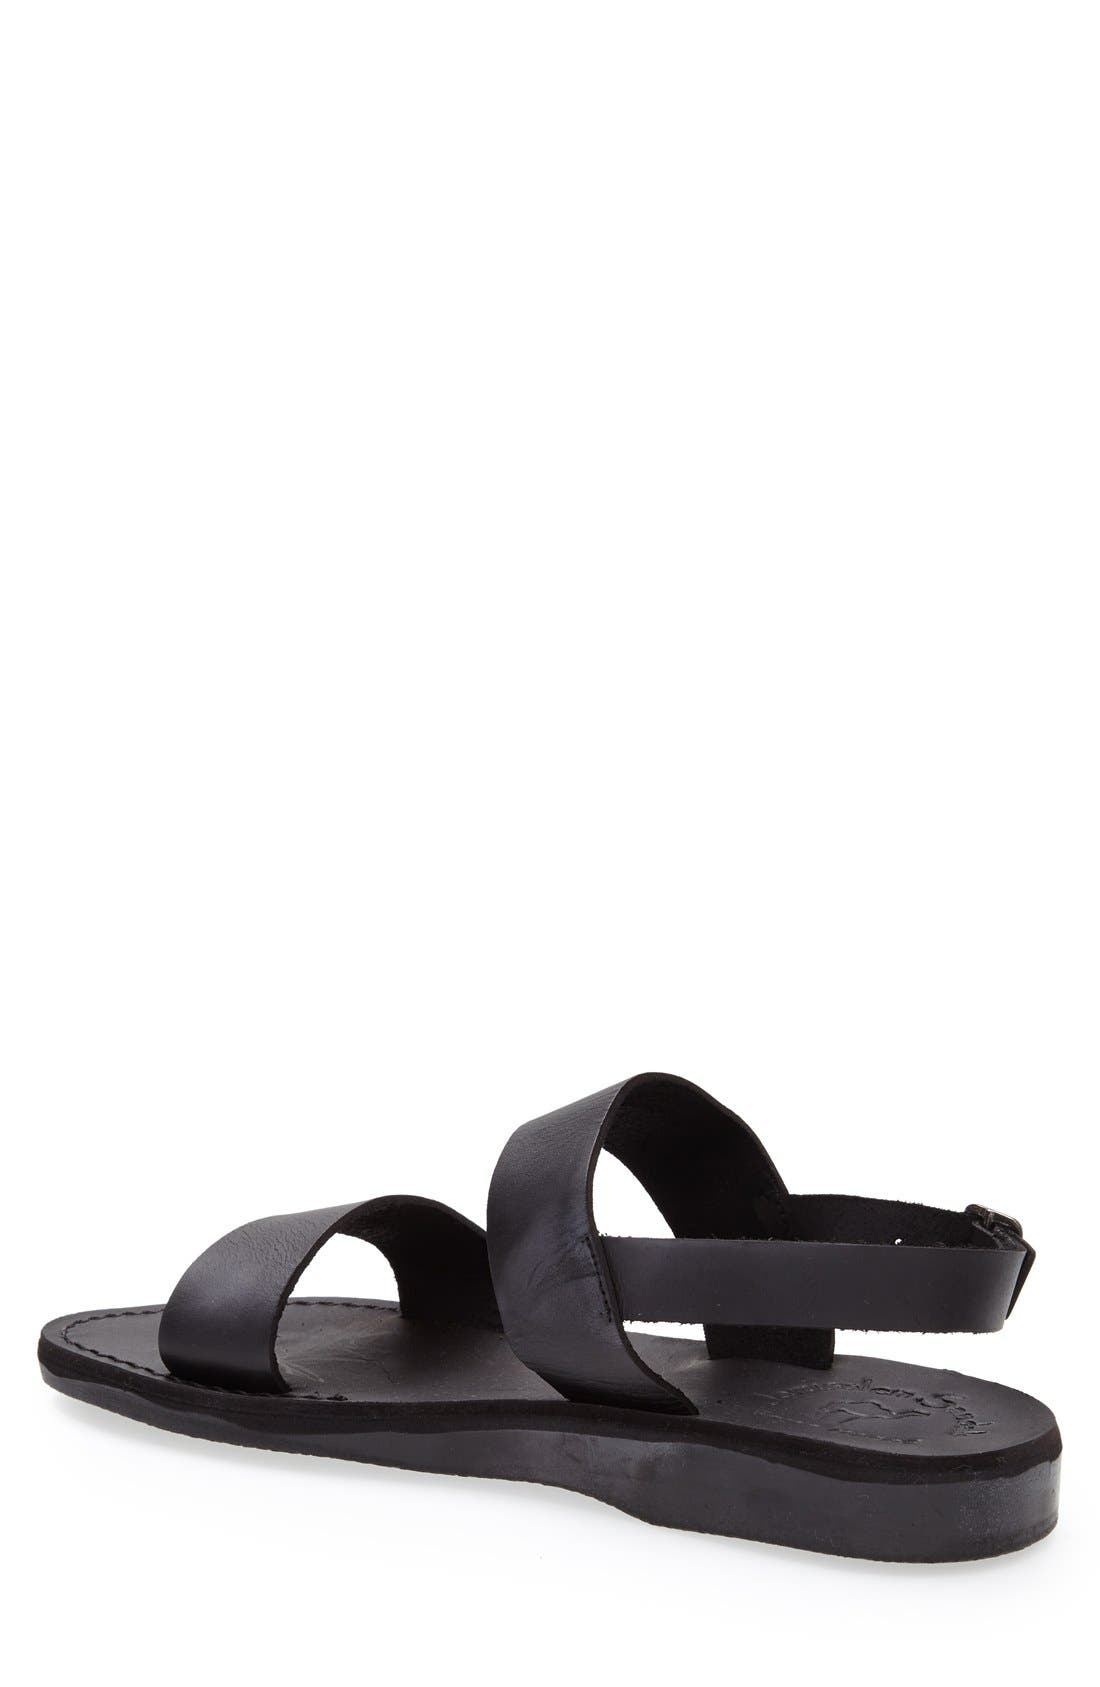 'Golan' Leather Sandal,                             Alternate thumbnail 2, color,                             Black